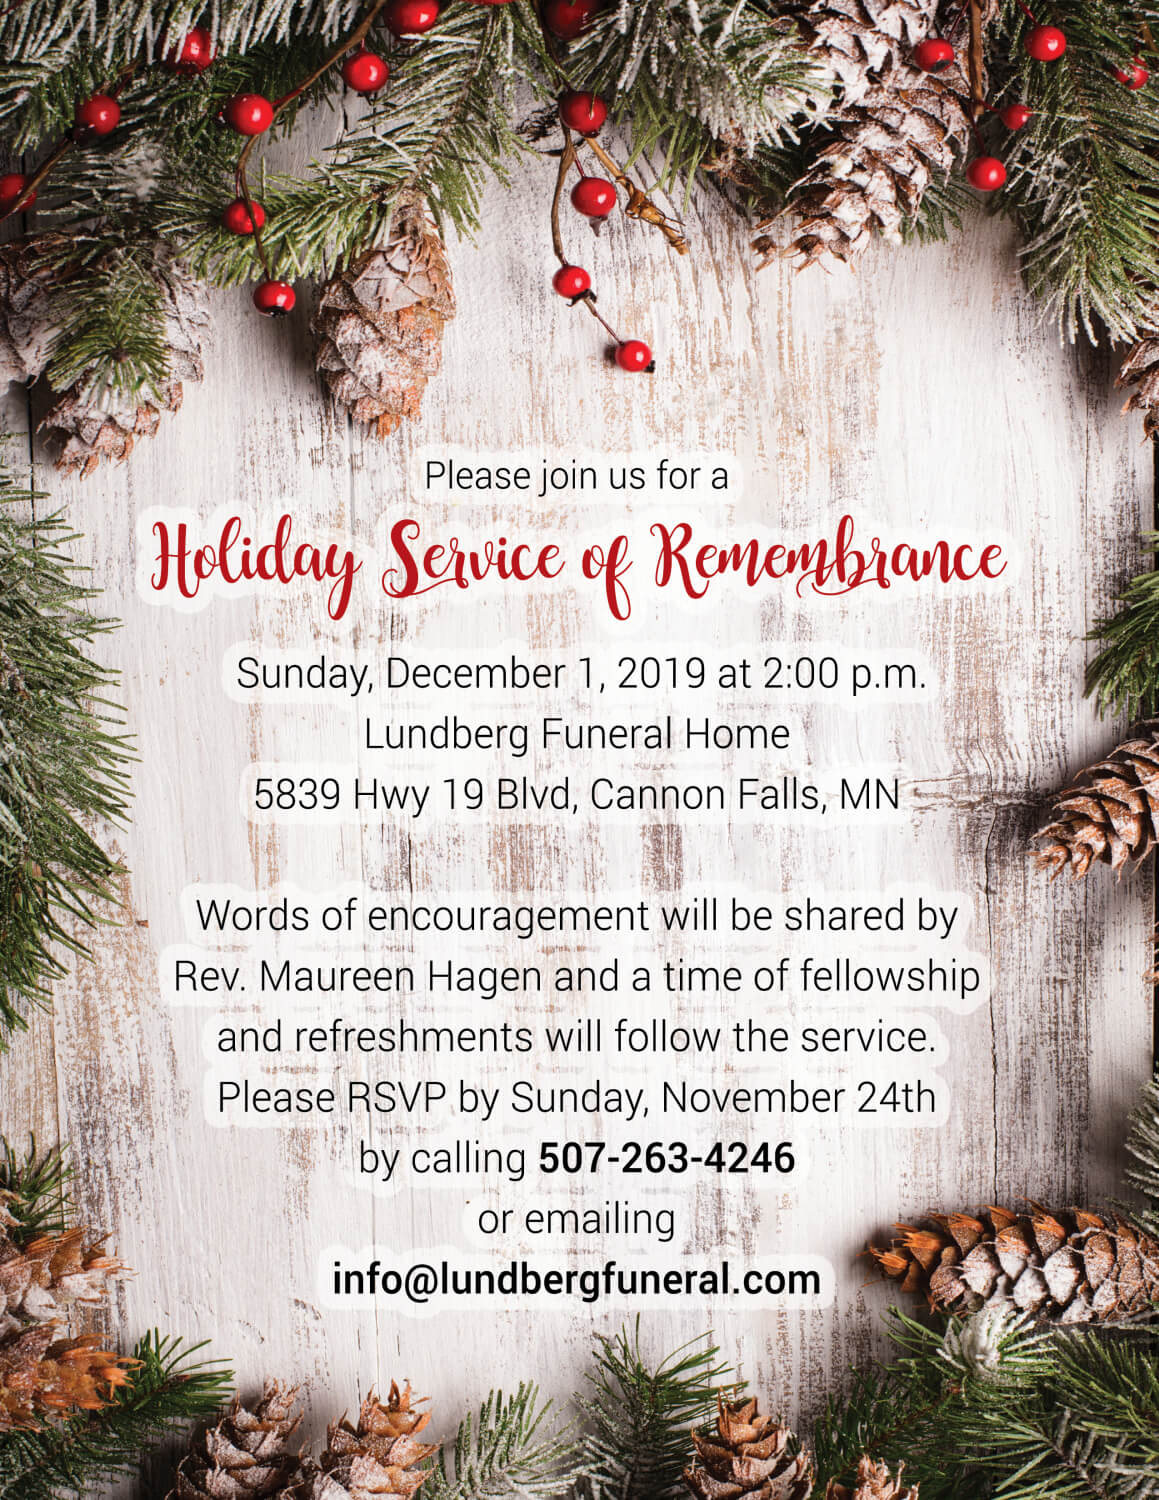 Lundberg Funeral Home Cannon Falls Mn Funeral Home And